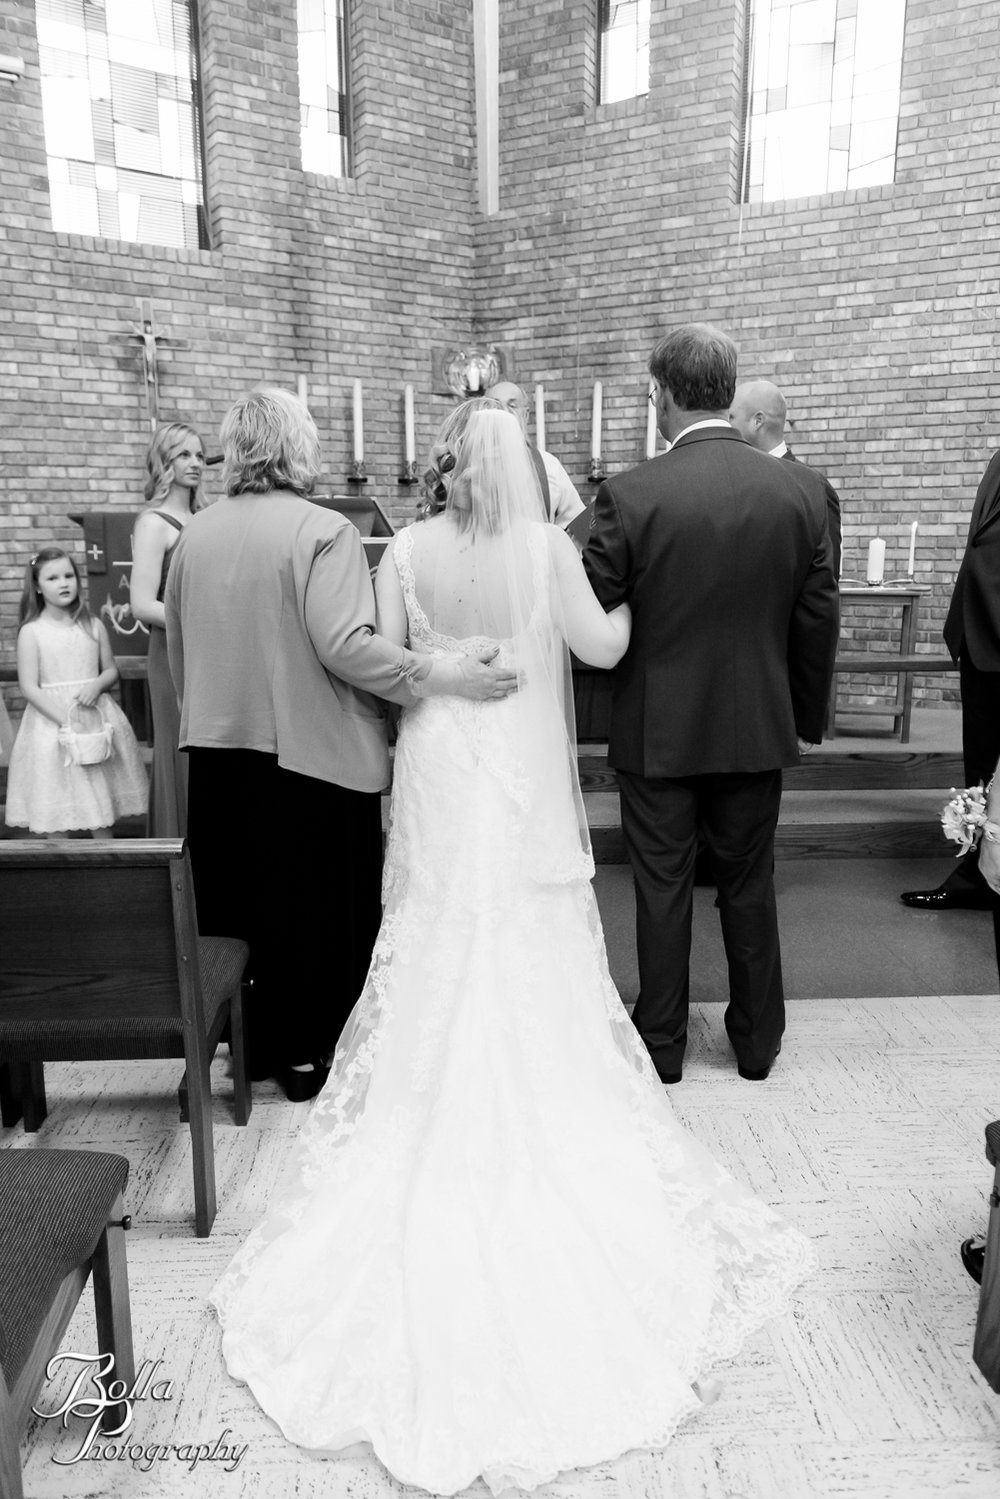 Bolla_Photography_St_Louis_wedding_photographer_Wildey_Theater_Edwardsville-0156.jpg